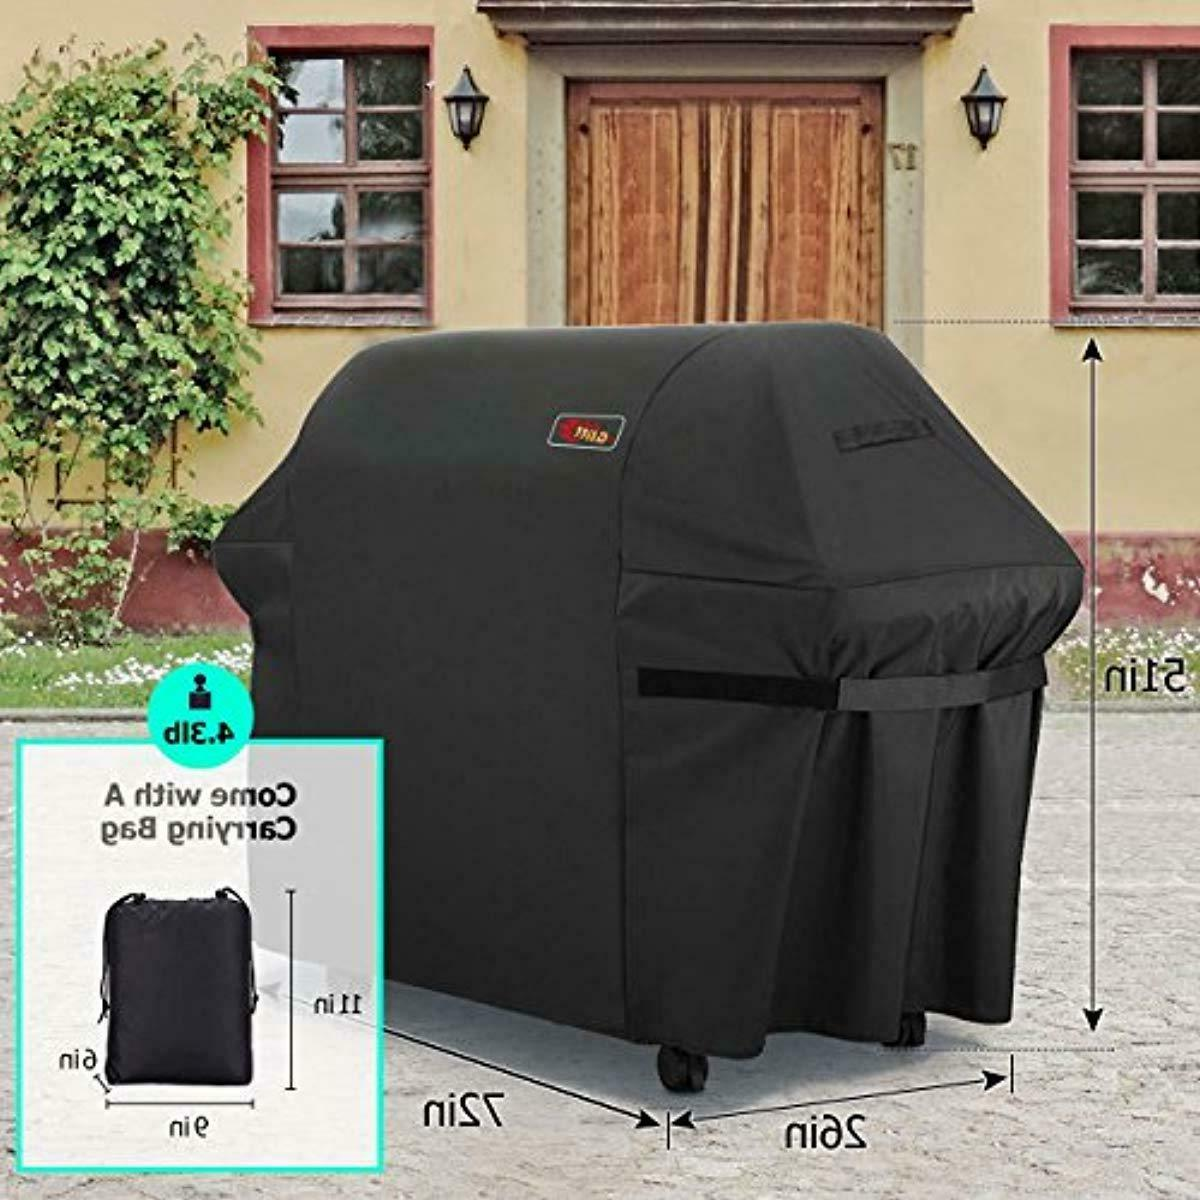 VicTsing 5+ Burner Gas Grill Cover, Fits Most Brands Grill-Large 7